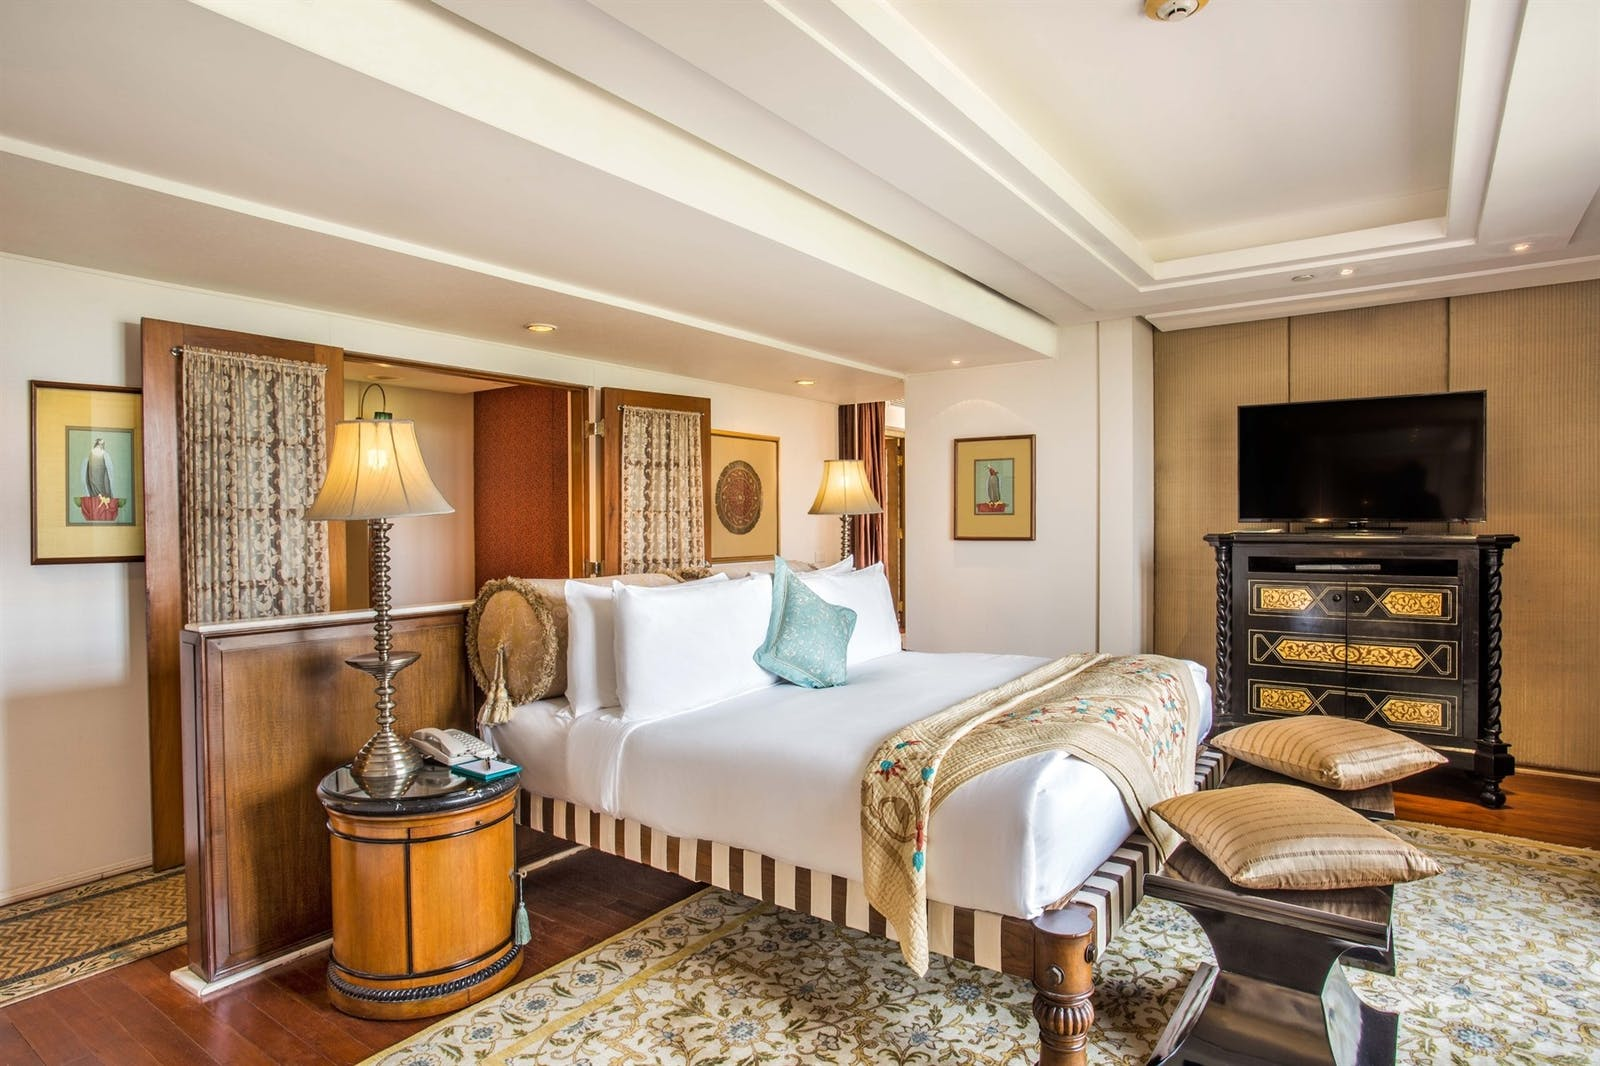 kohinoor suite bedroom at the oberoi amarvillas agra